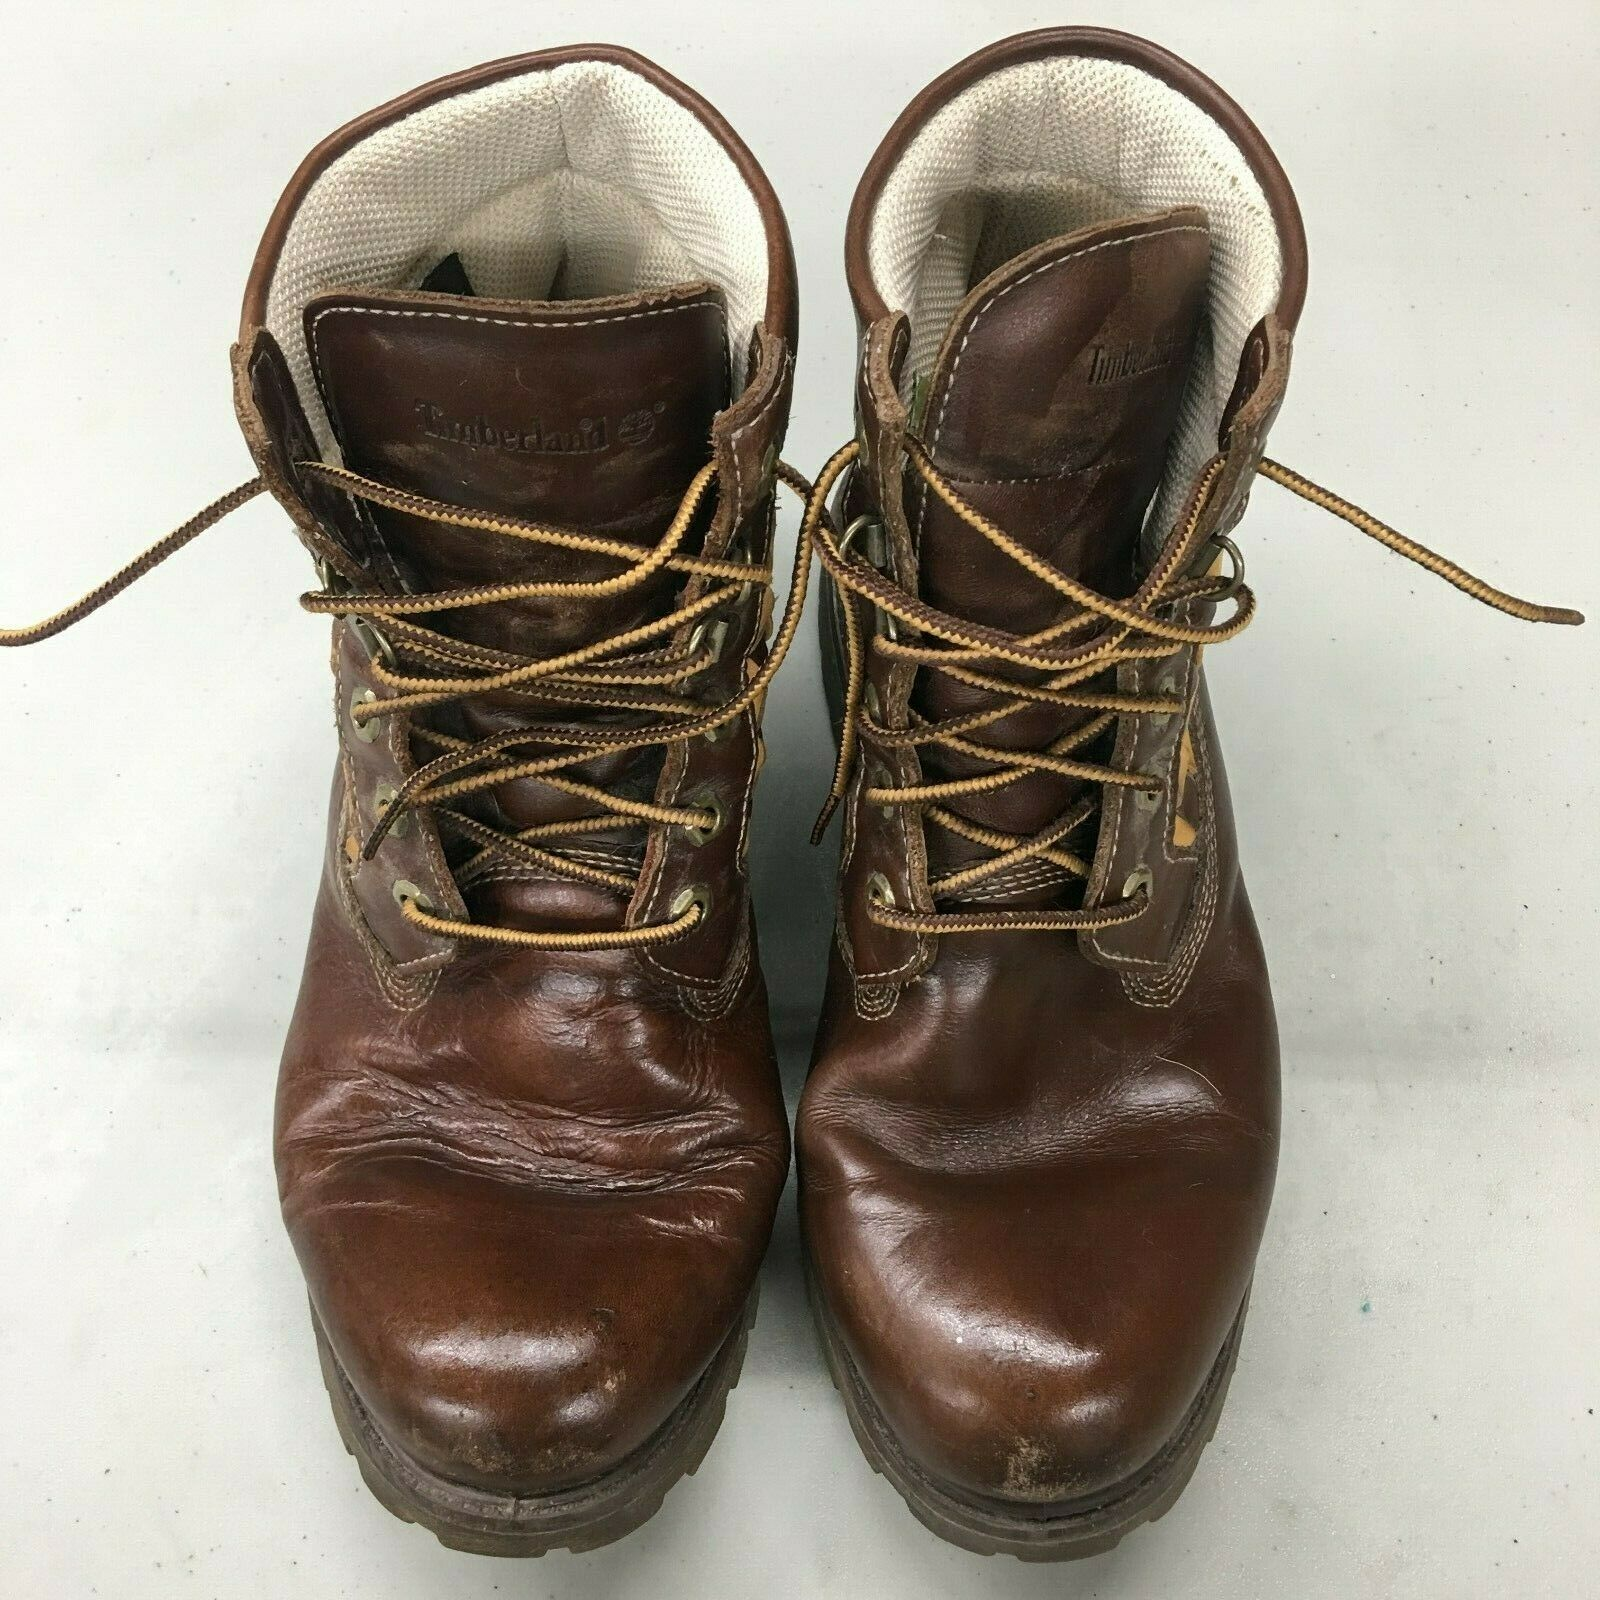 Vintage Unique Leather Brown Checkered Hi Top Timberland Men's Boots Sz 9.5 US